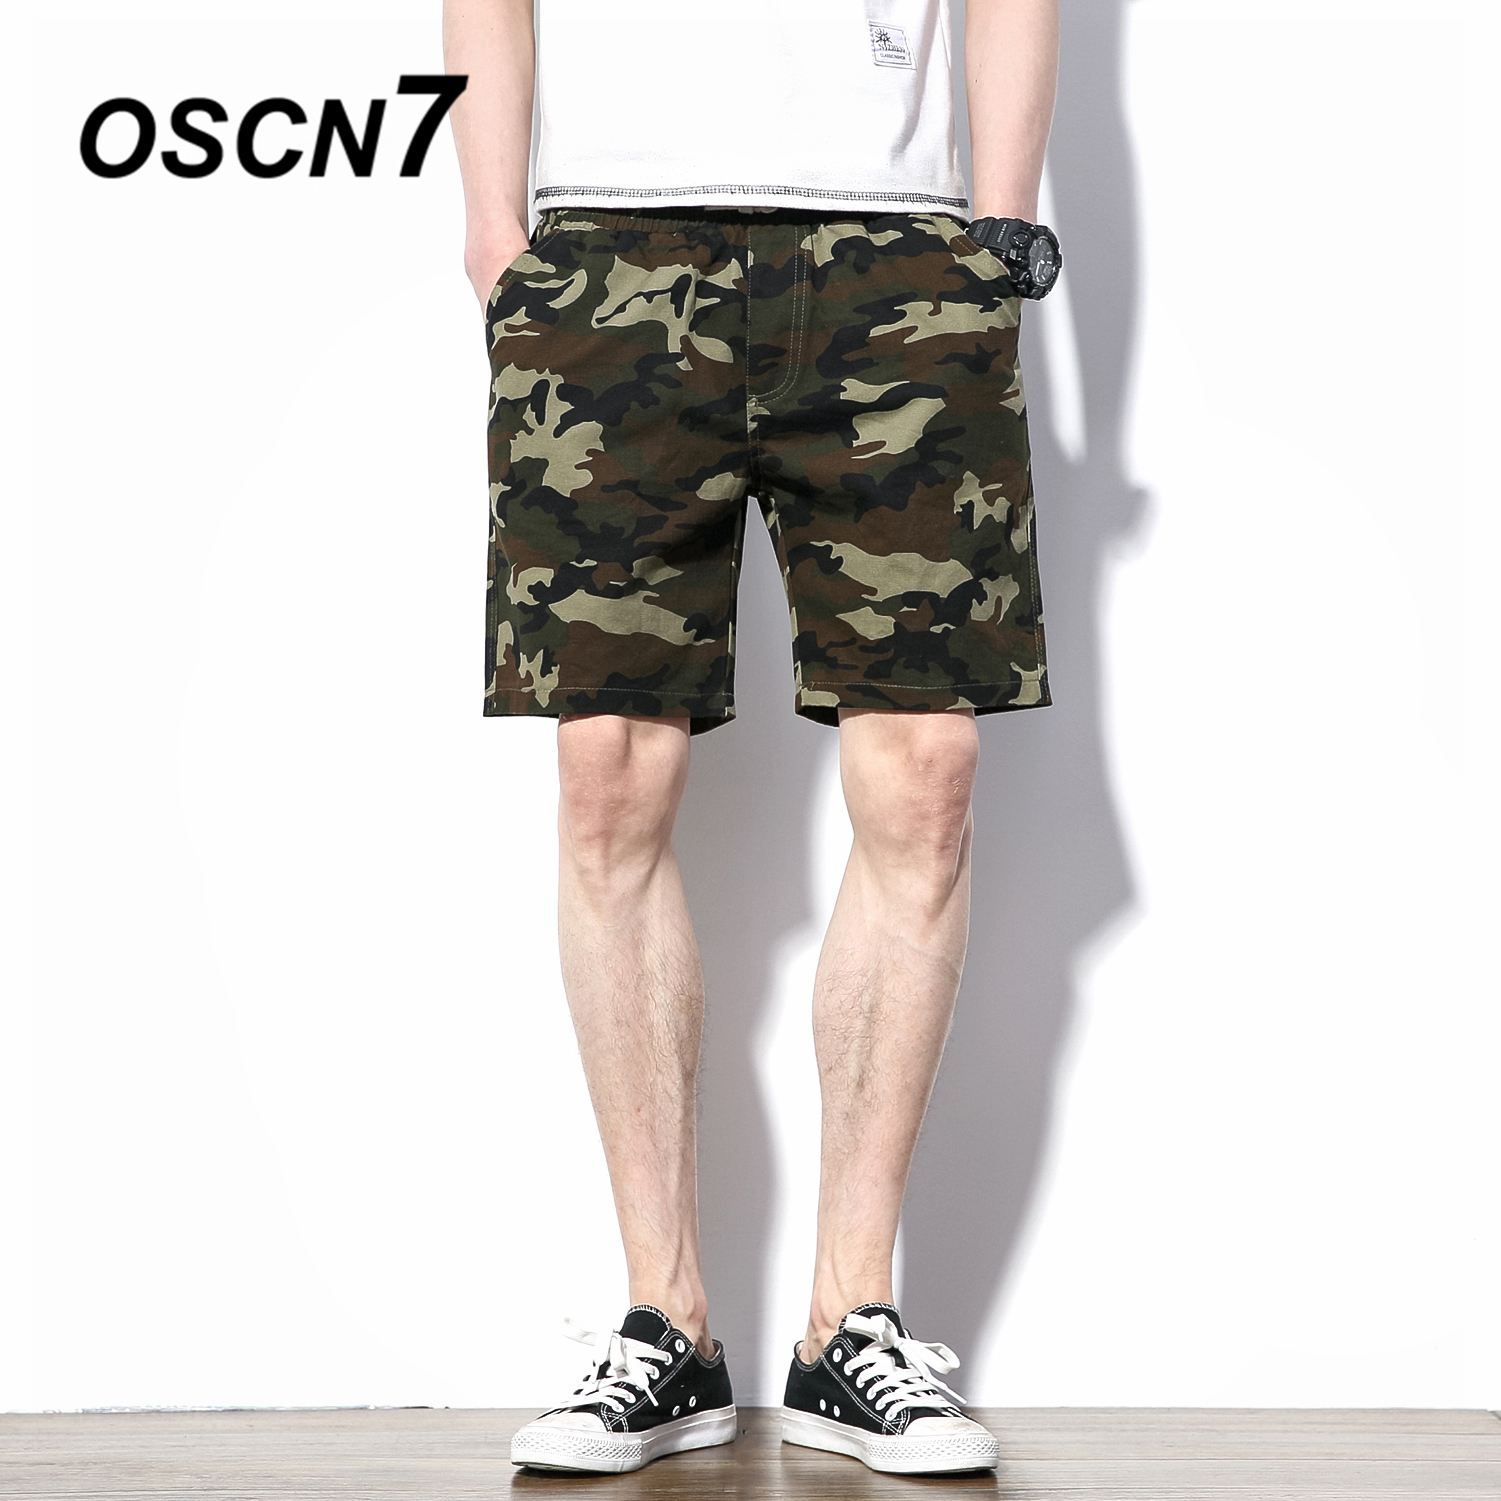 OSCN7 Camouflage Beach Shorts Men Plus Size Casual Fashion Mens Shorts Leisure Short Pants K8170